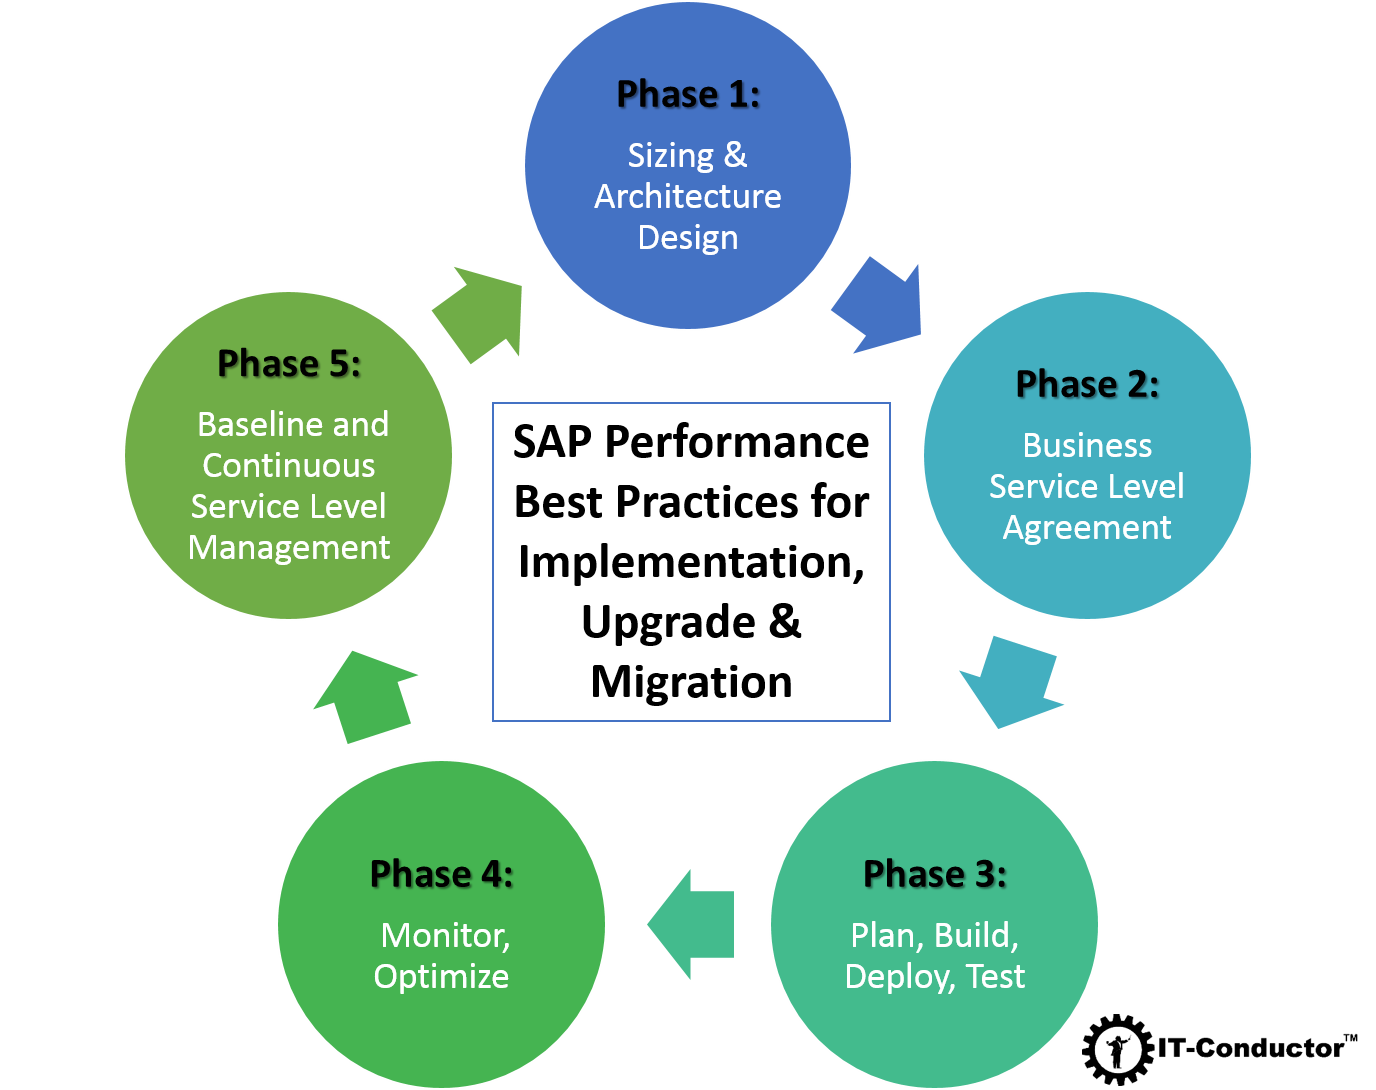 Sap Performance Best Practices For Implementation Upgrade Migration